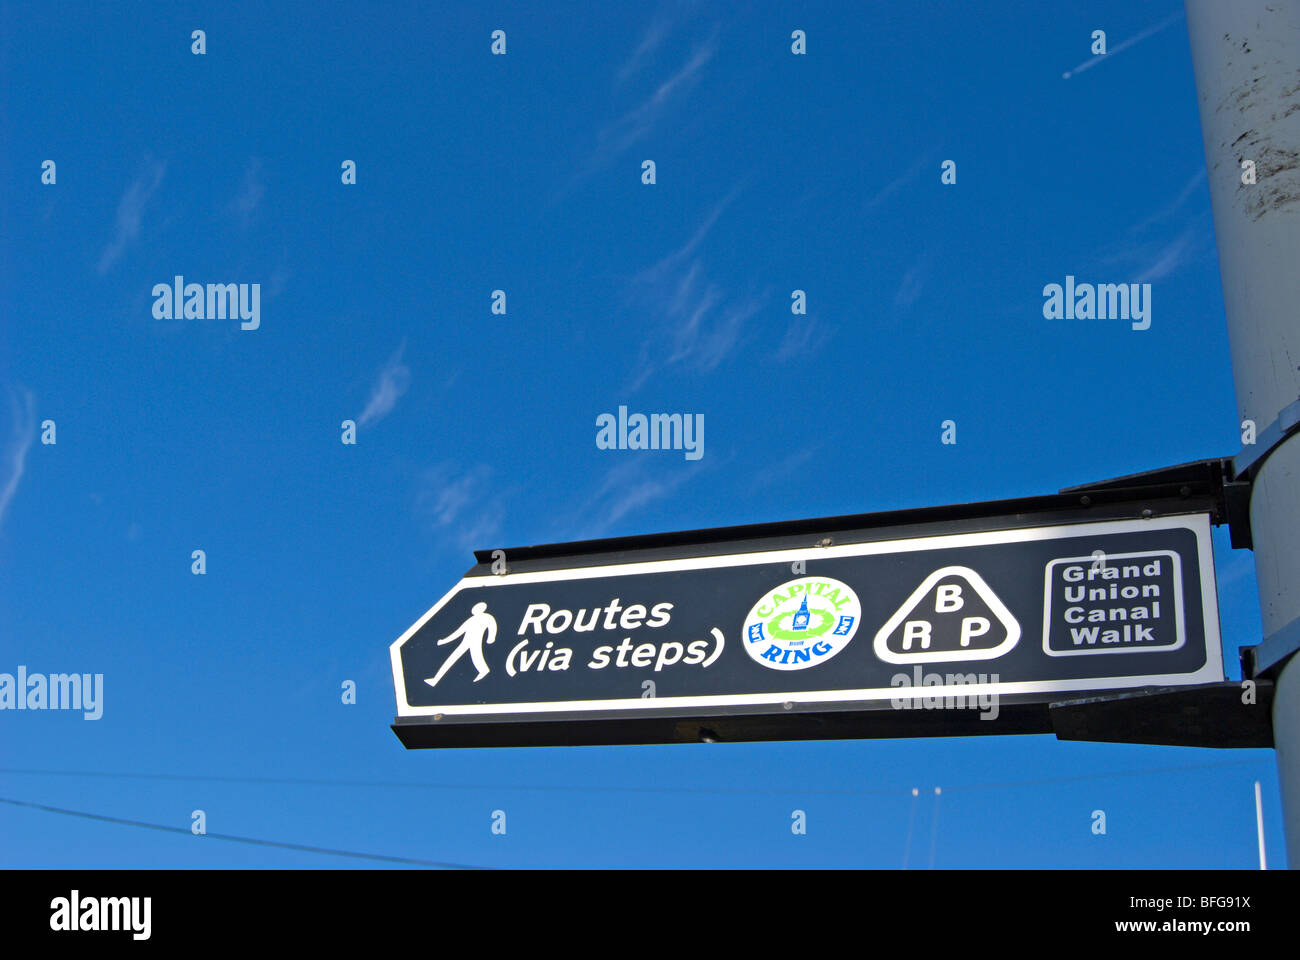 sign for walking routes via steps for the grand union canal, capital ring and brent river park in west london, england - Stock Image